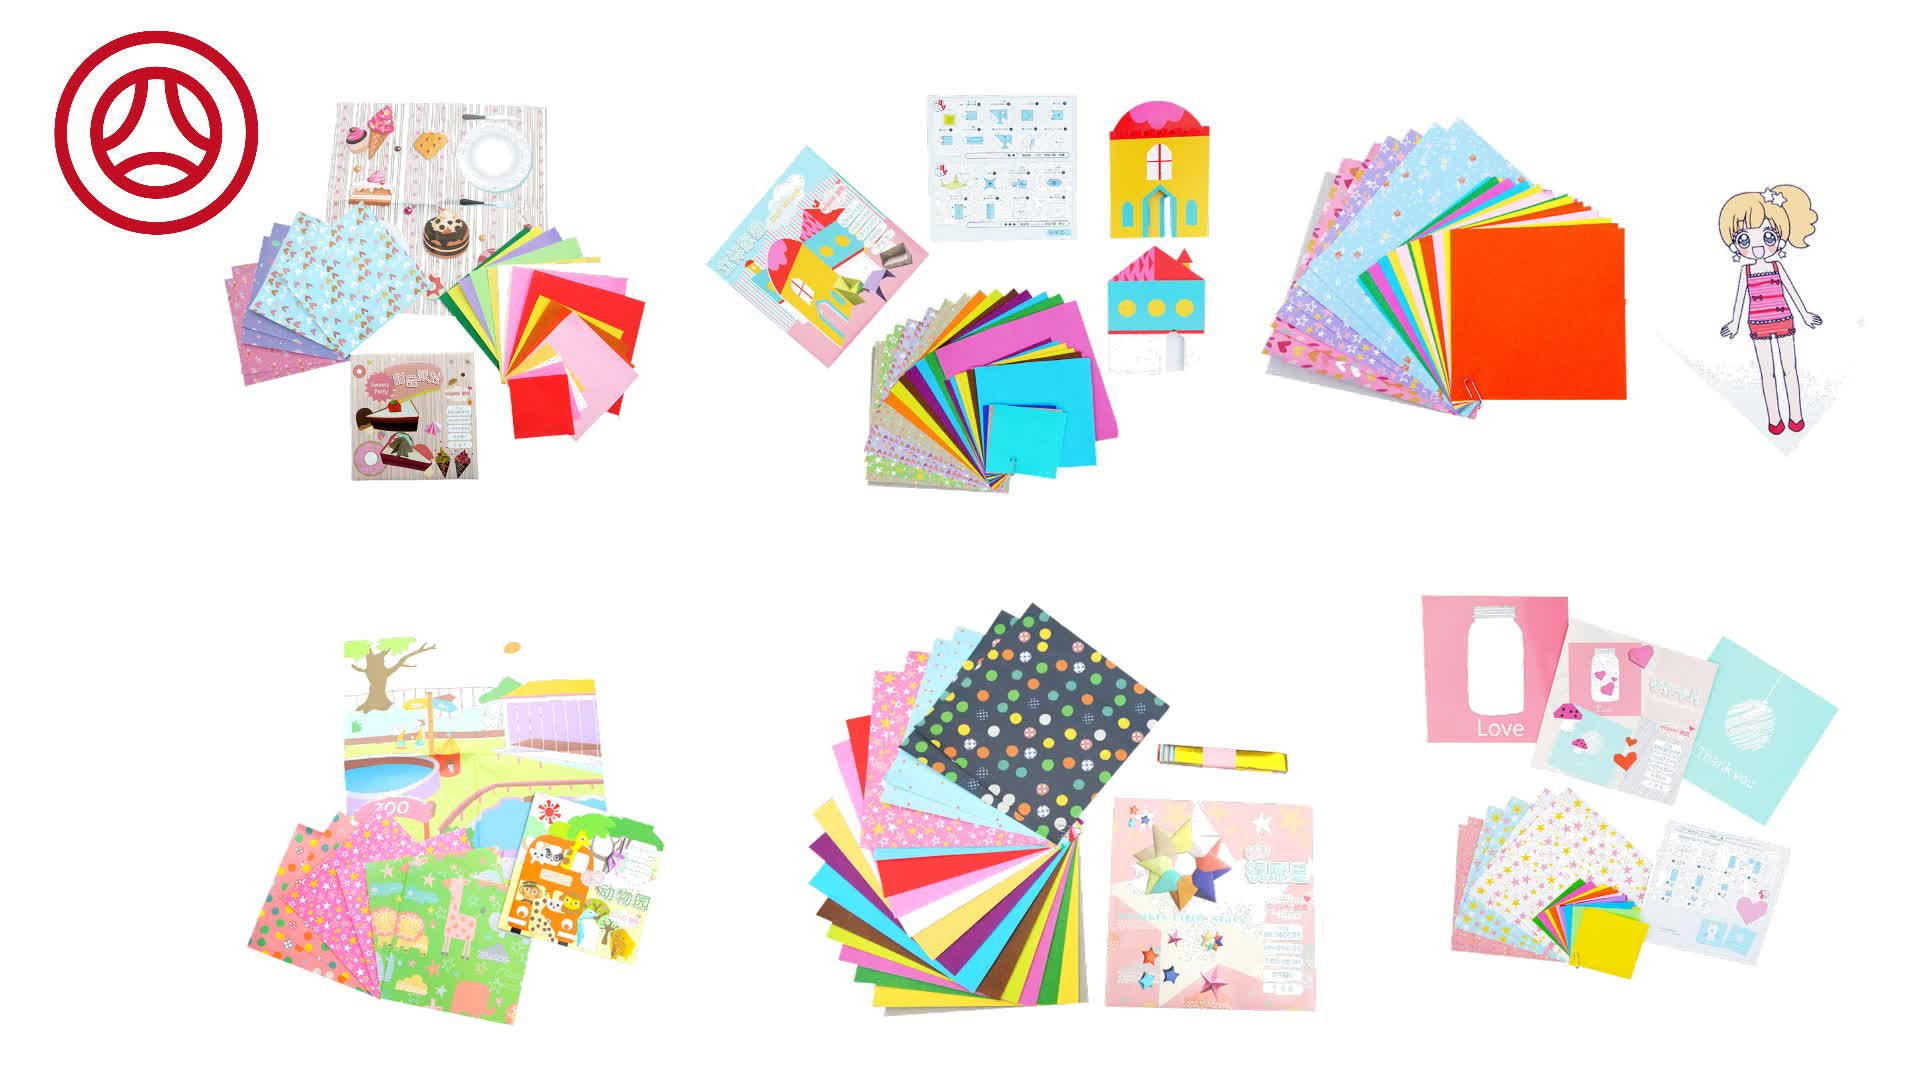 Cheap Professional Handmade Storage Box Origami Made By Colorful Origami Paper Set,Origami Box